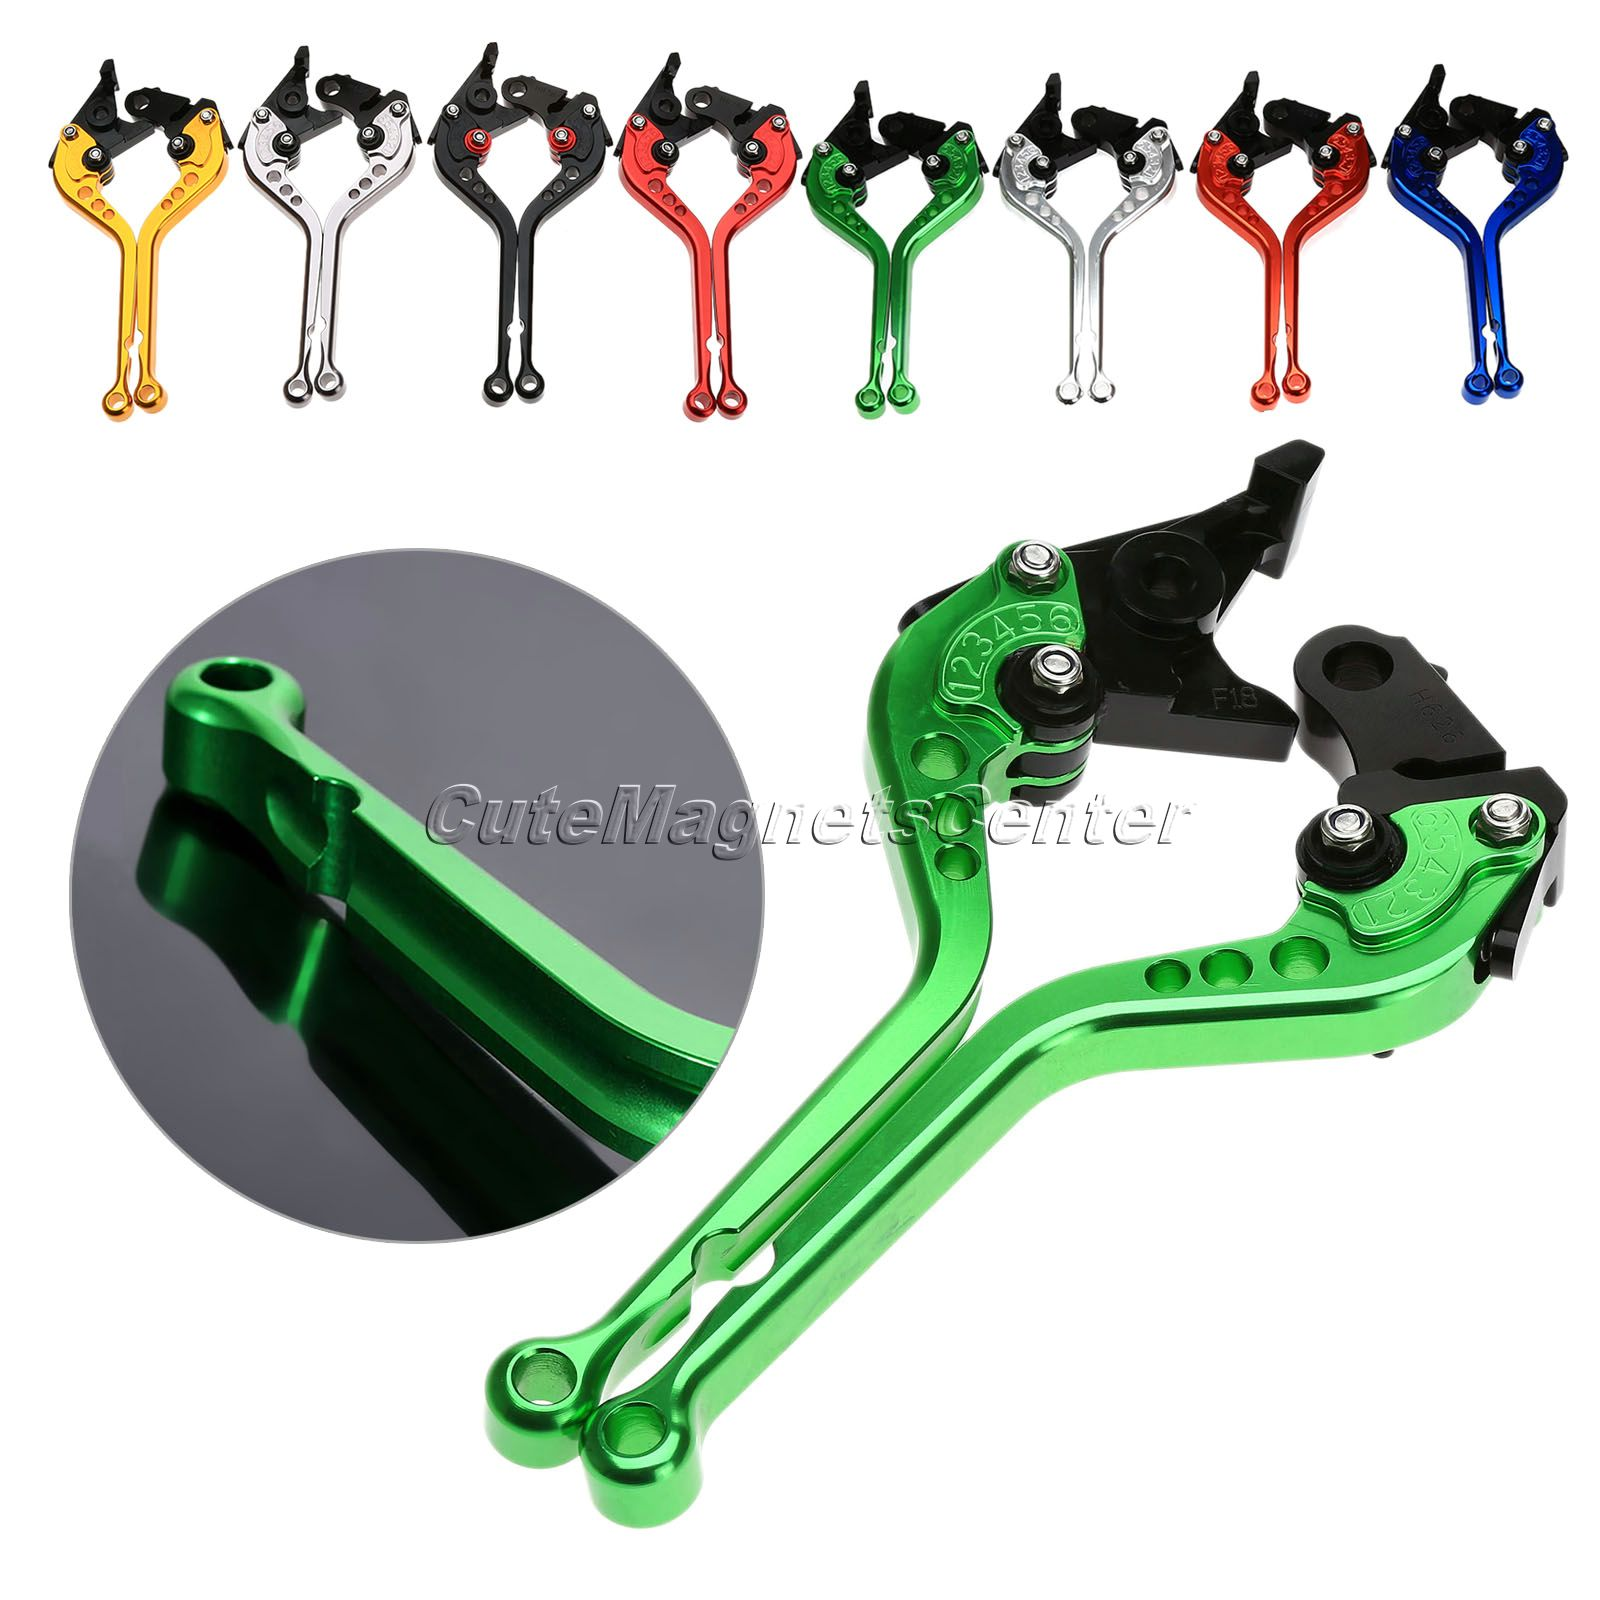 Motorcycle Adjustable CNC Clutch Brake Levers Long Motorbike Brake Clutch Lever For Kawasaki Z750 2007 2008 2009 2010 2011 2012 billet adjustable long folding brake clutch levers for kawasaki z750 z 750 2007 2008 2009 2010 2011 07 11 z800 z 800 2013 2014